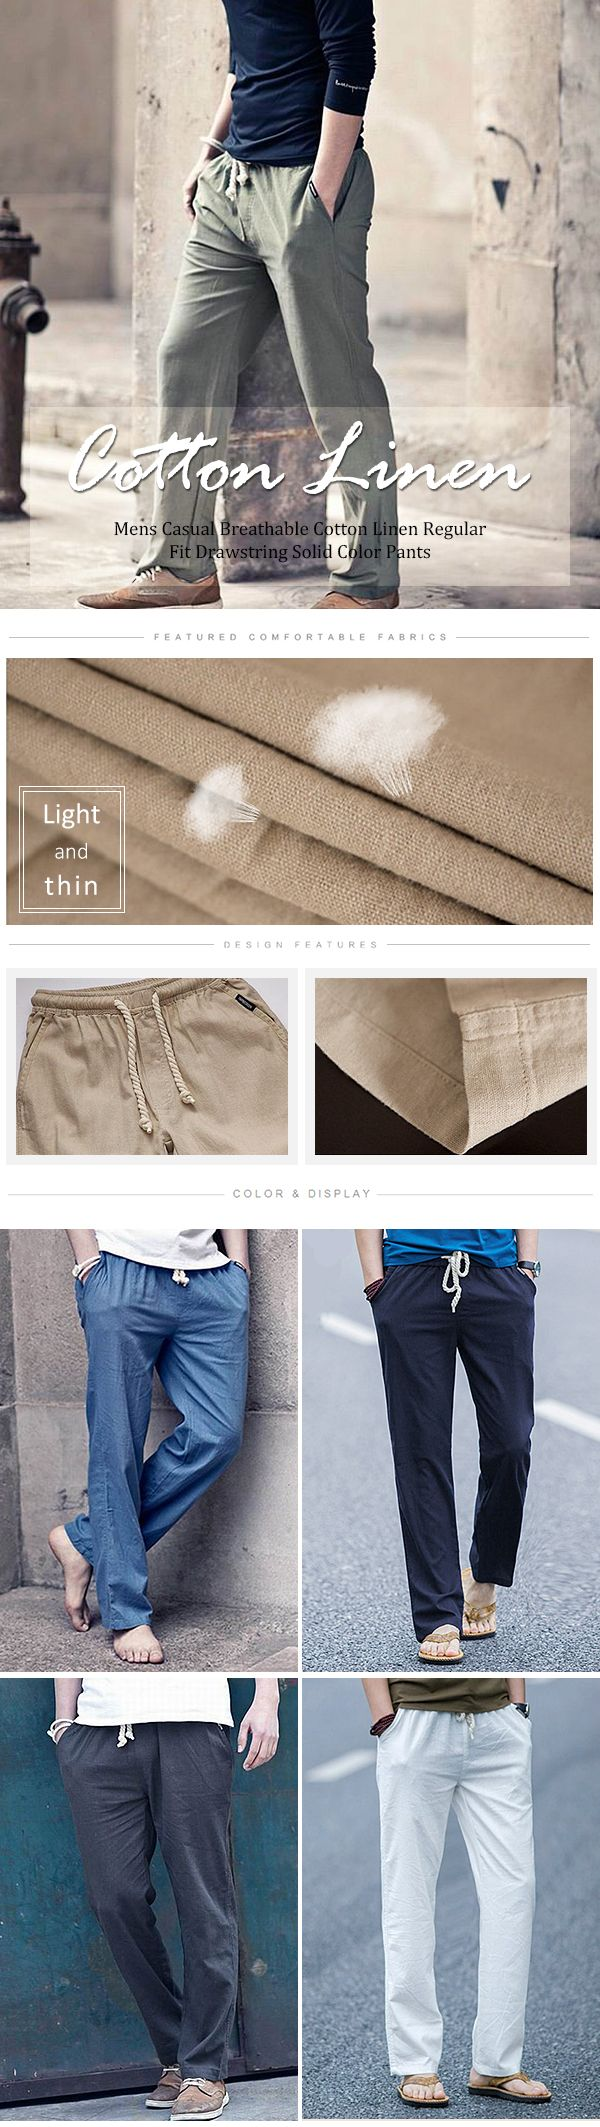 Mens Casual Breathable Cotton Linen Regular Fit Drawstring Solid Color Pants